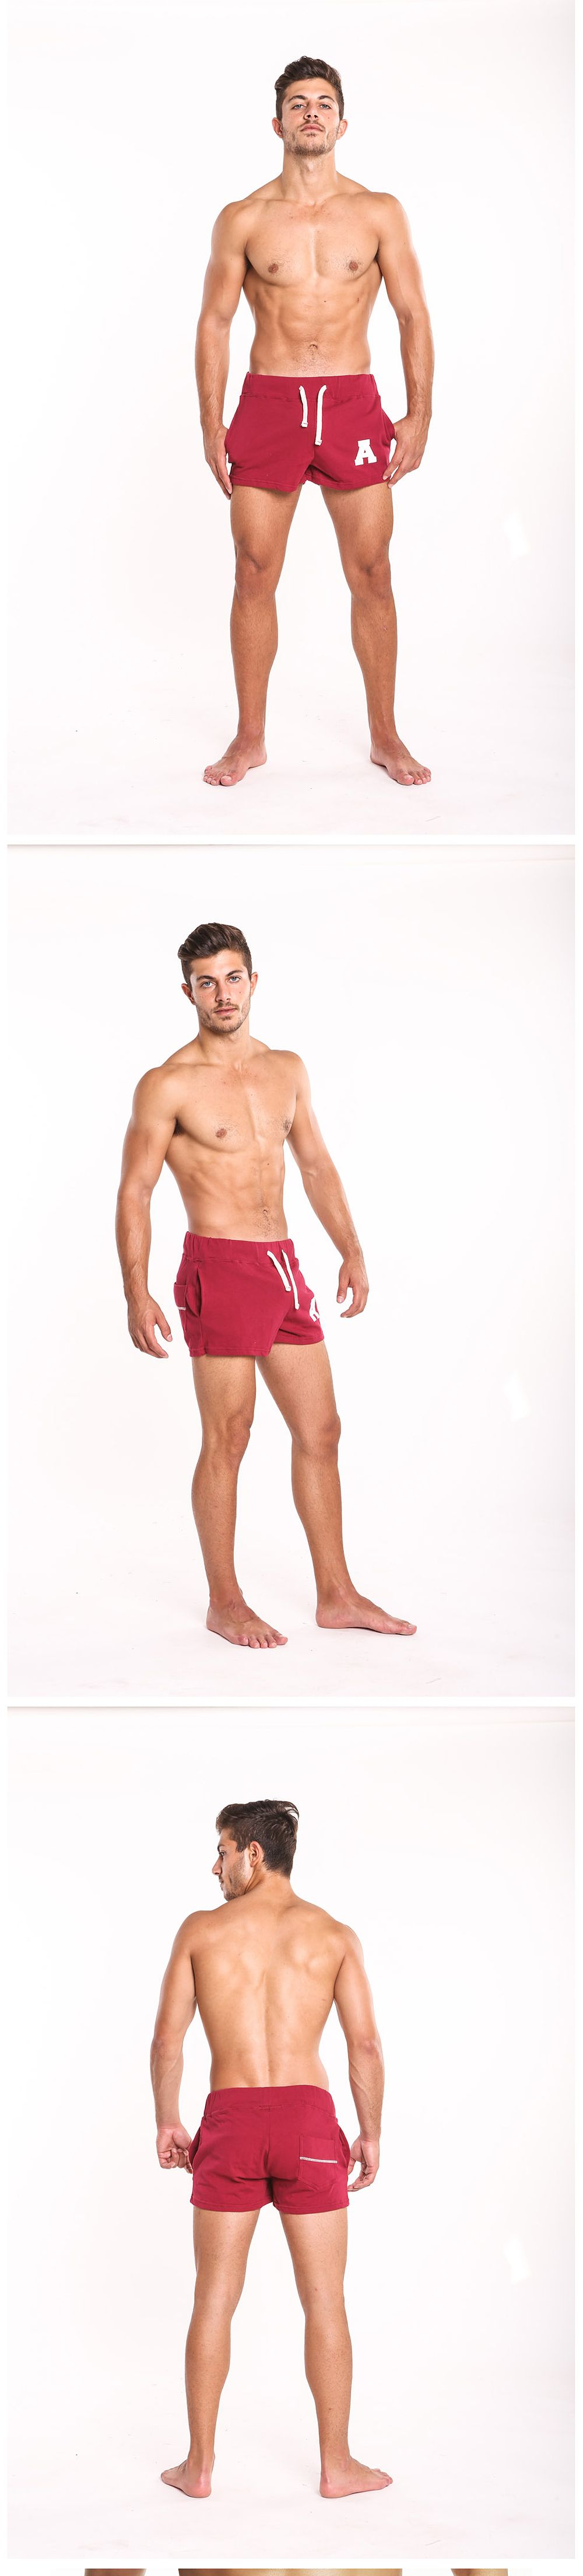 Taddlee Sexy Men's Sports Running Short Shorts Cotton Red Pockets Gym Training Big Soft Low Rise Boxer Trunks Bottom